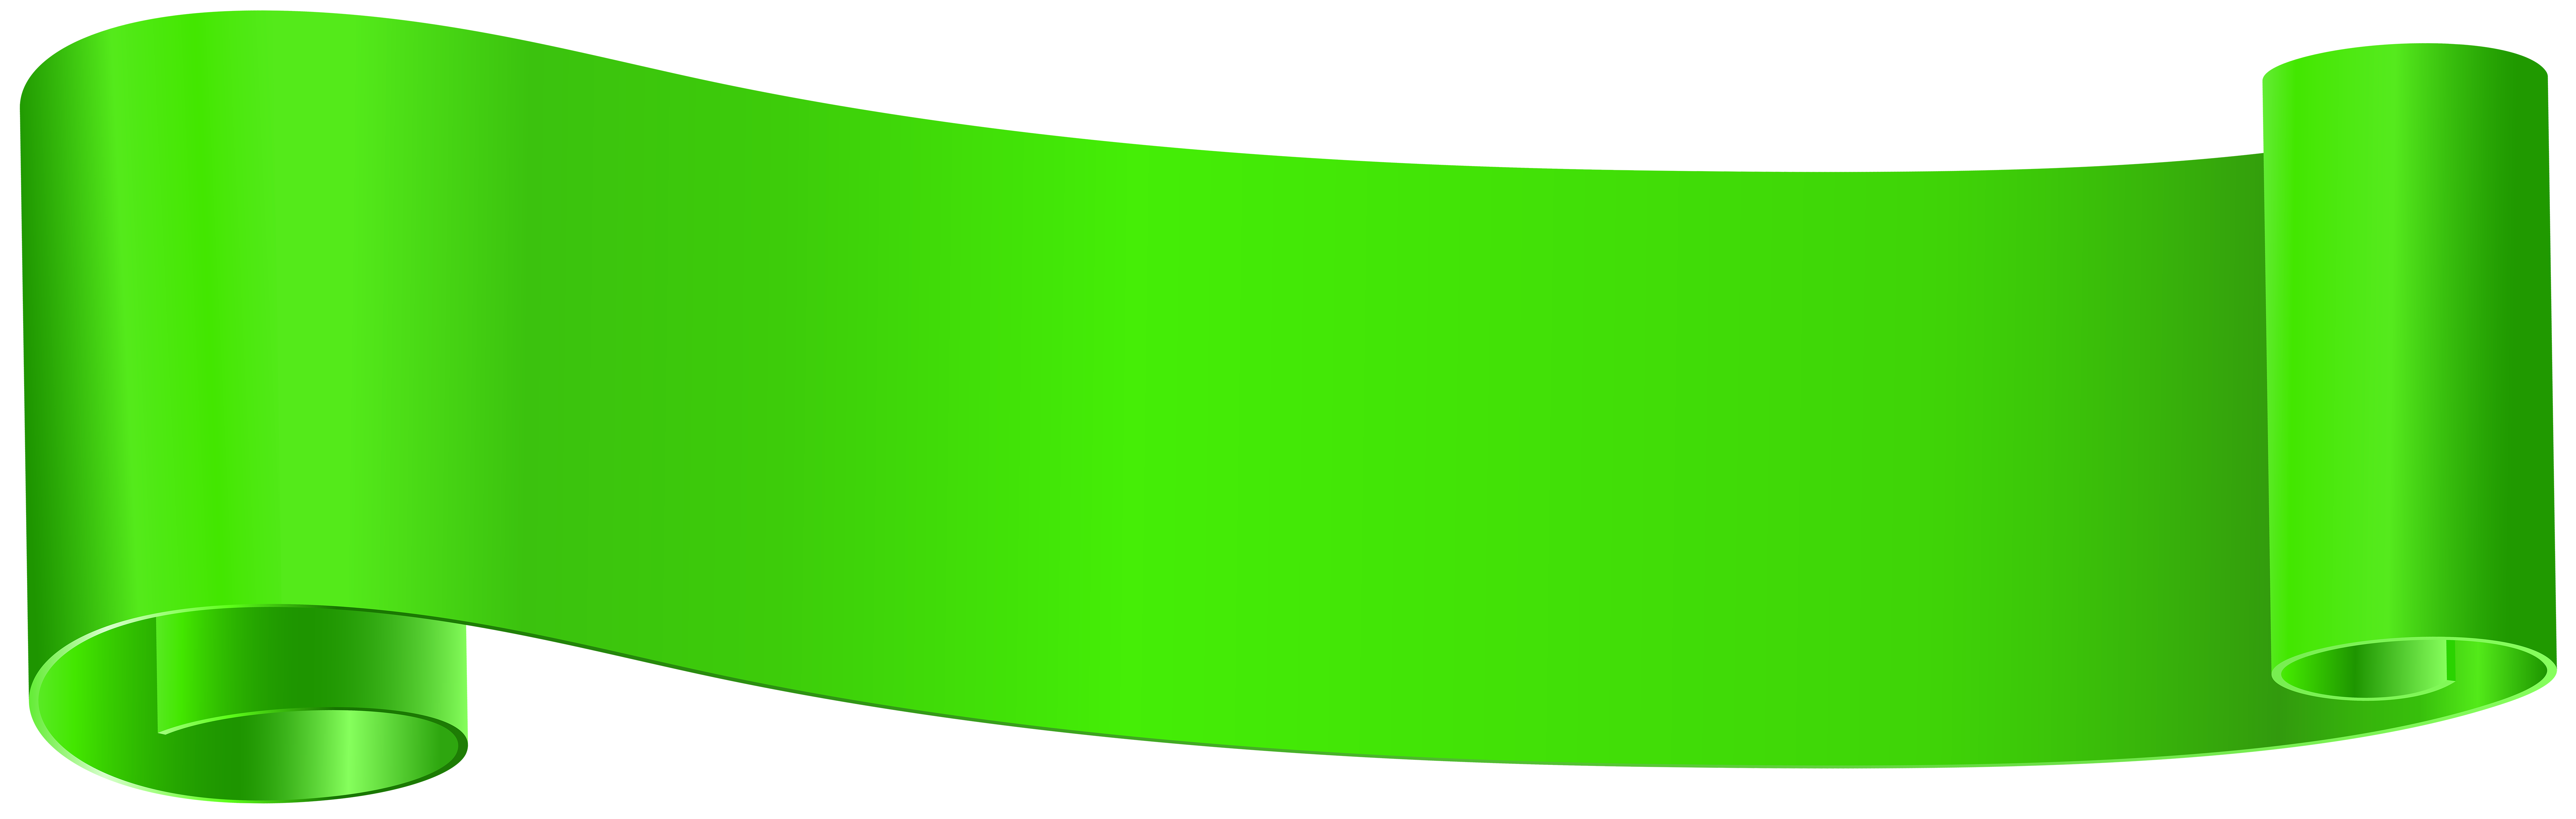 Green Banner Clip Art PNG Image.